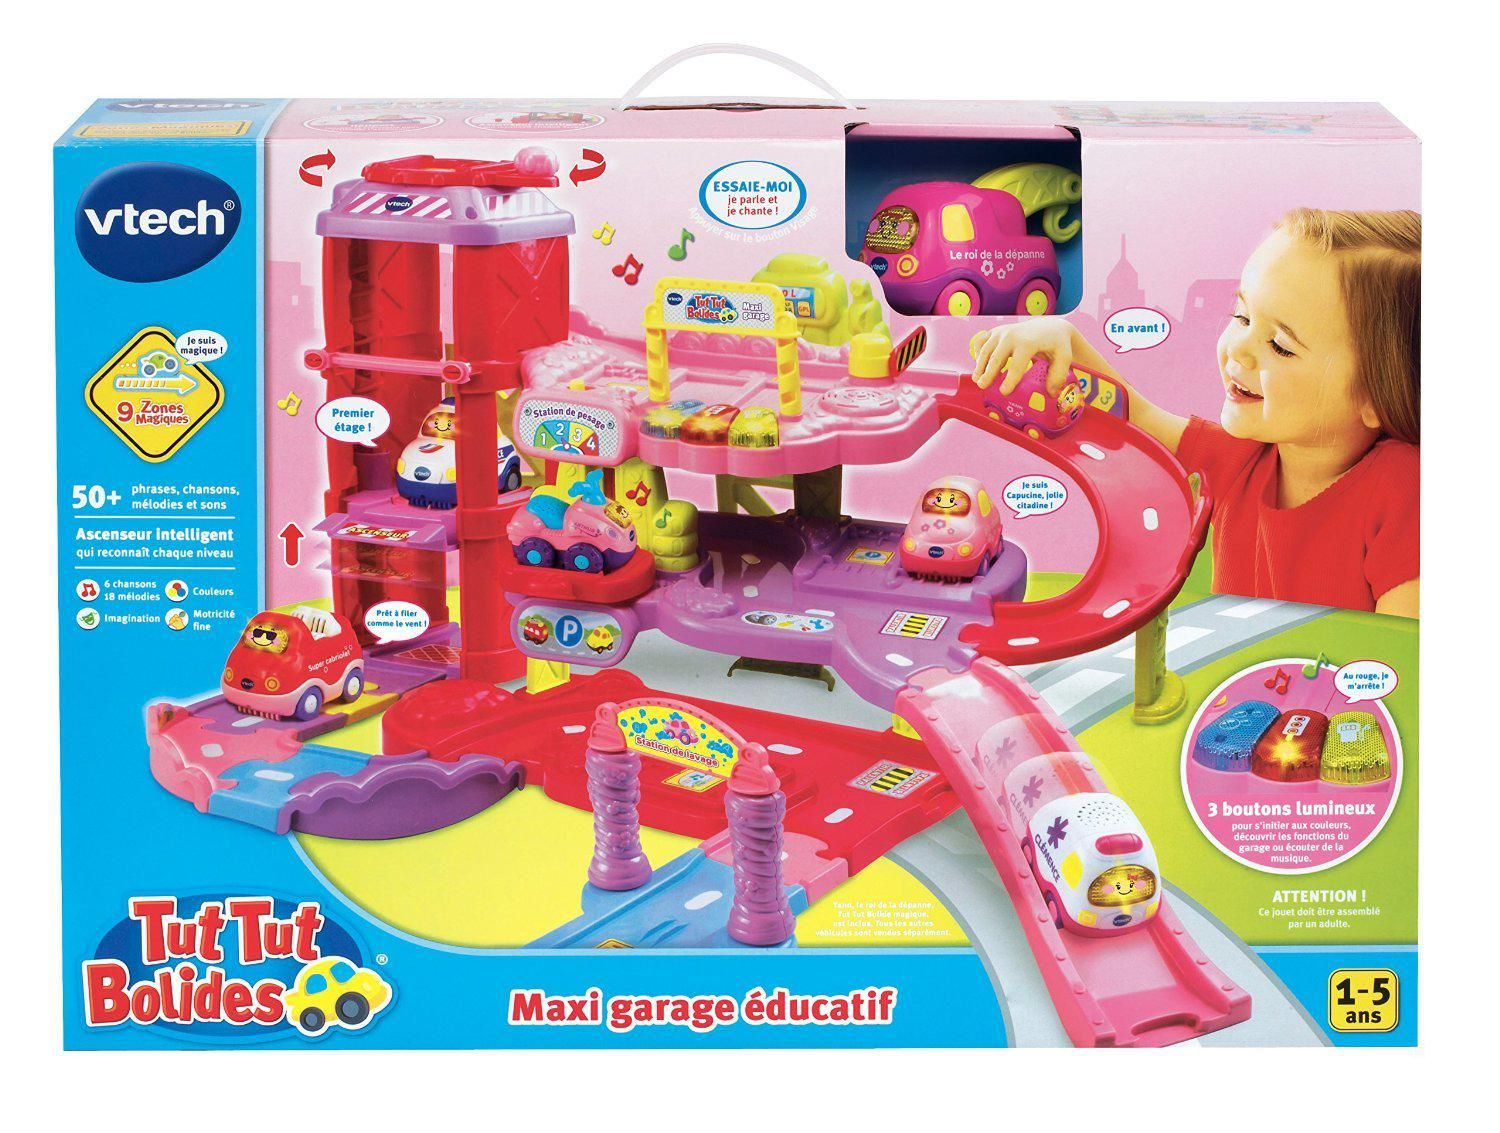 Vtech c digigo rose catgorie trains et circuits - Garage educatif tut tut bolides rose ...